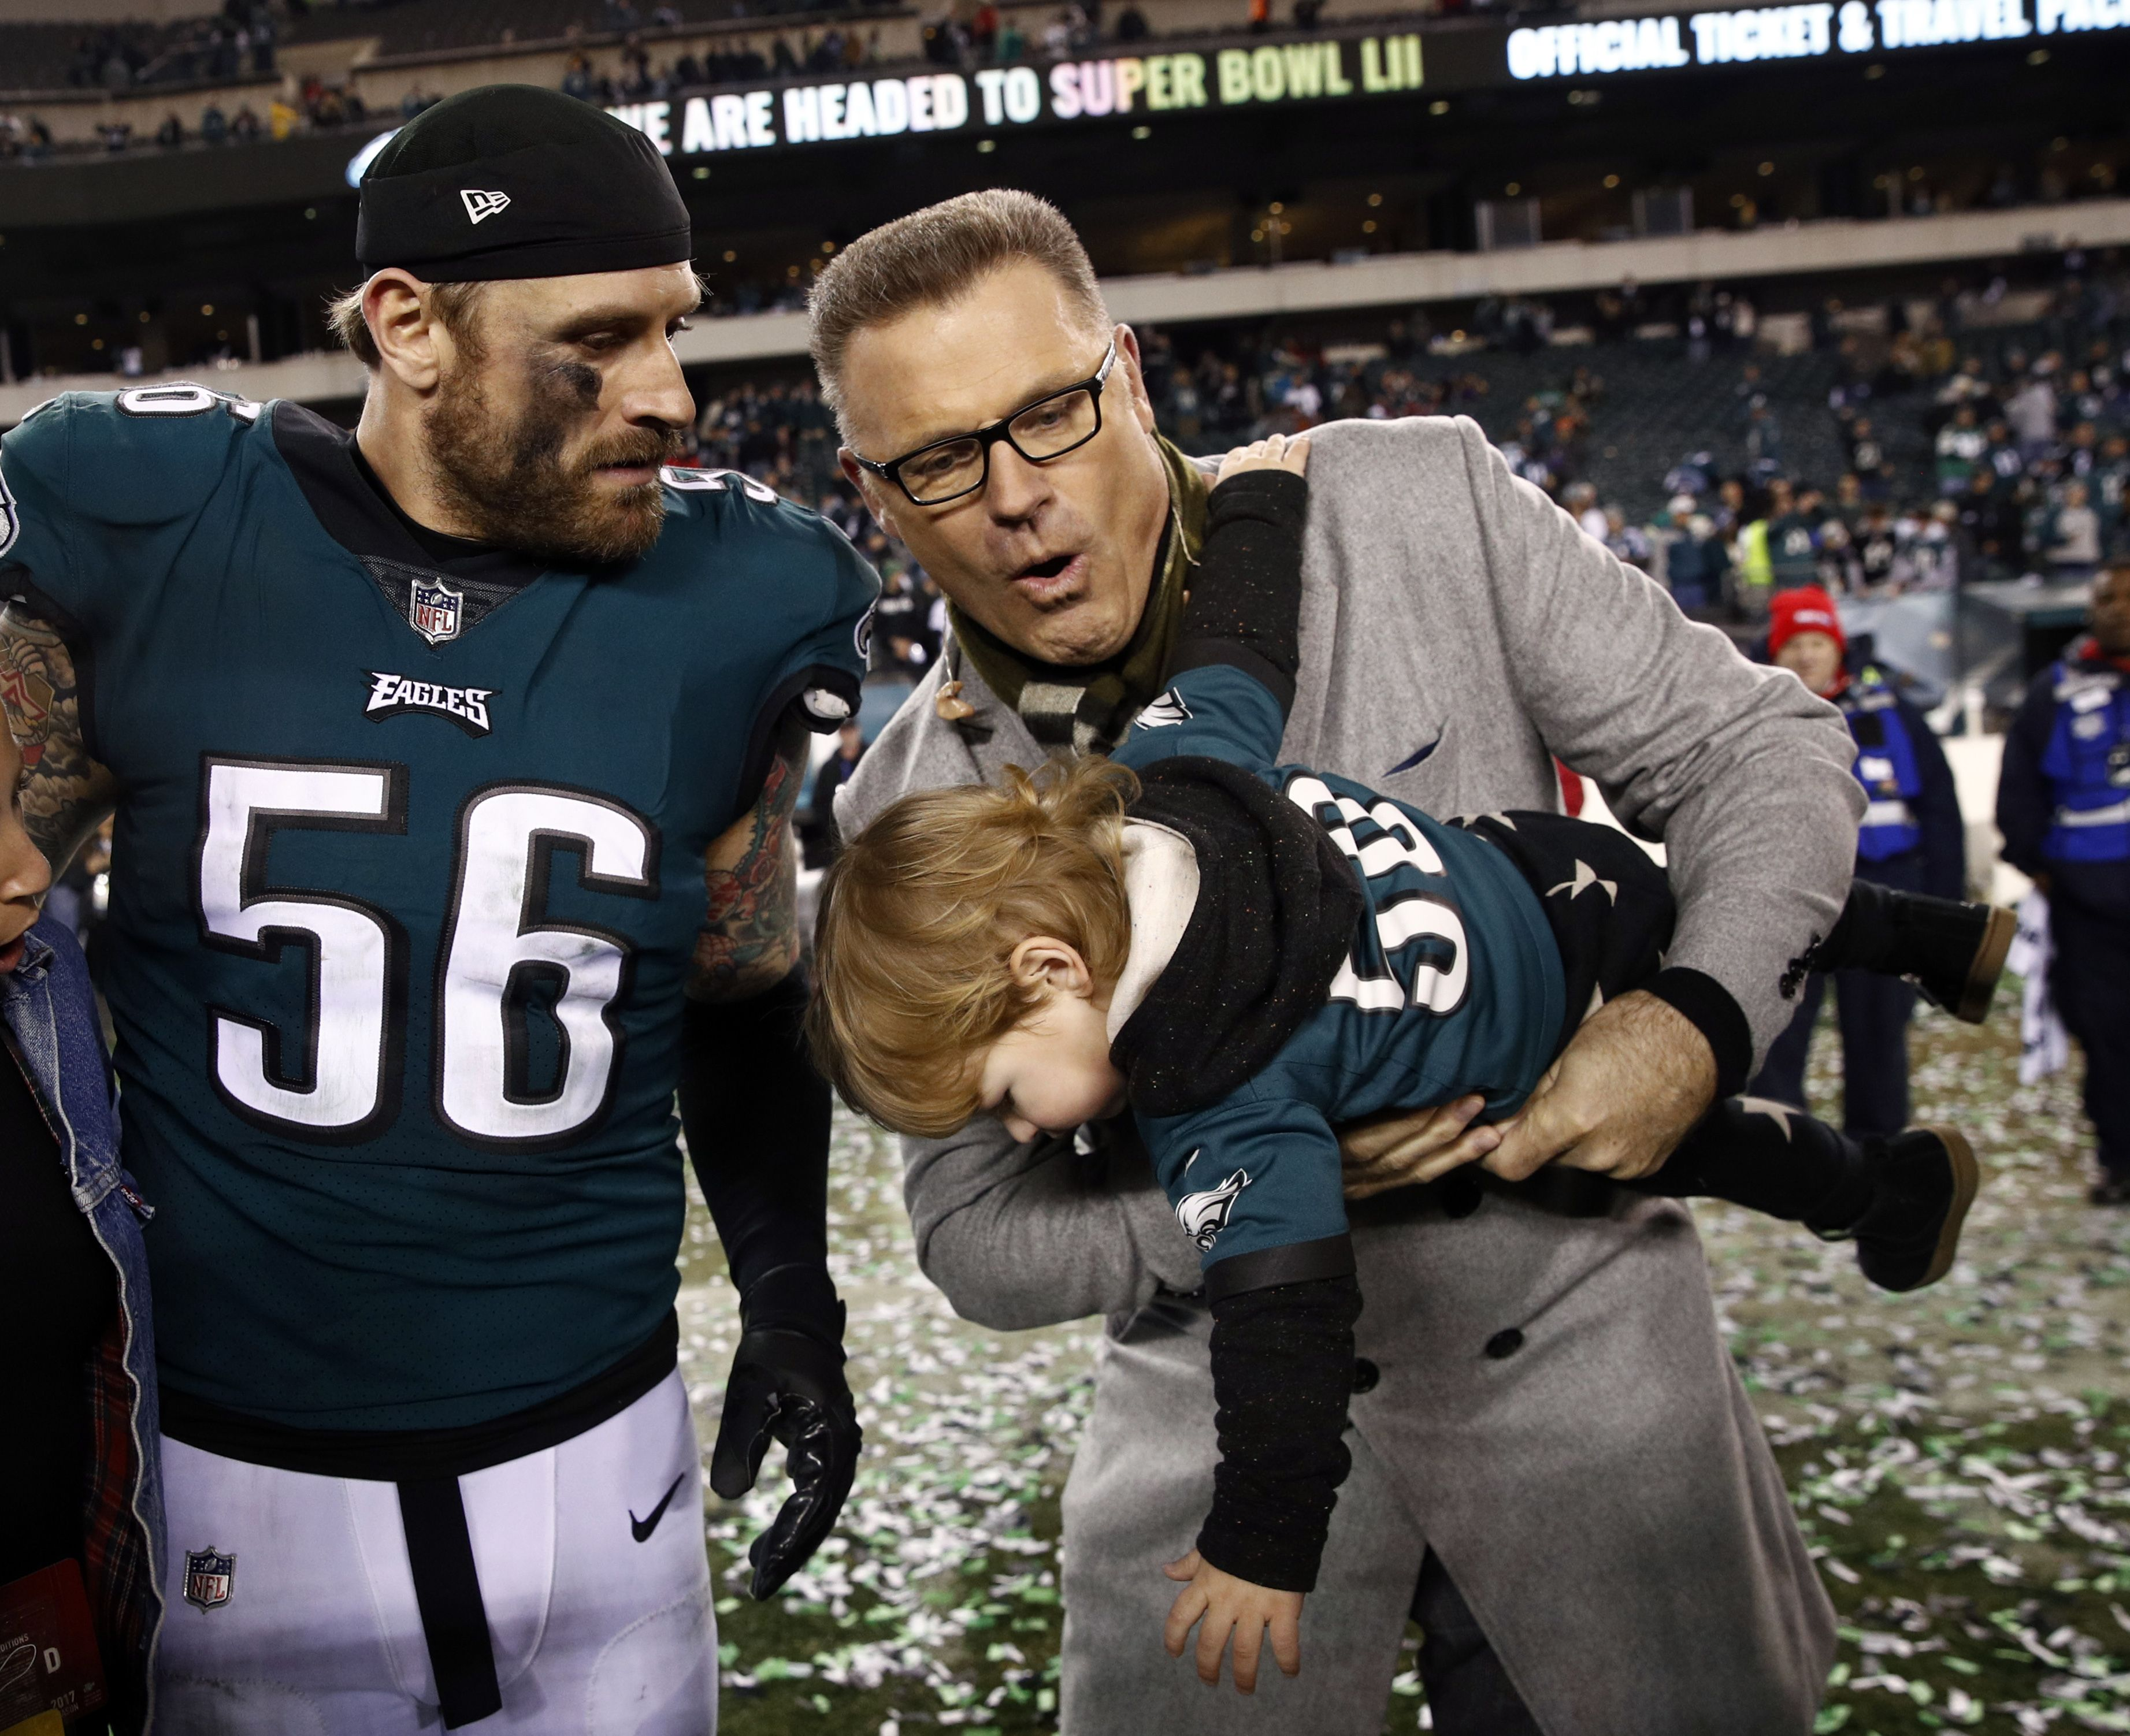 The Long S We Fly We Fly Ap Picture I Have No Rights To This Picture Philadelphia Eagles Football Philadelphia Eagles Fans Philadelphia Eagles Super Bowl